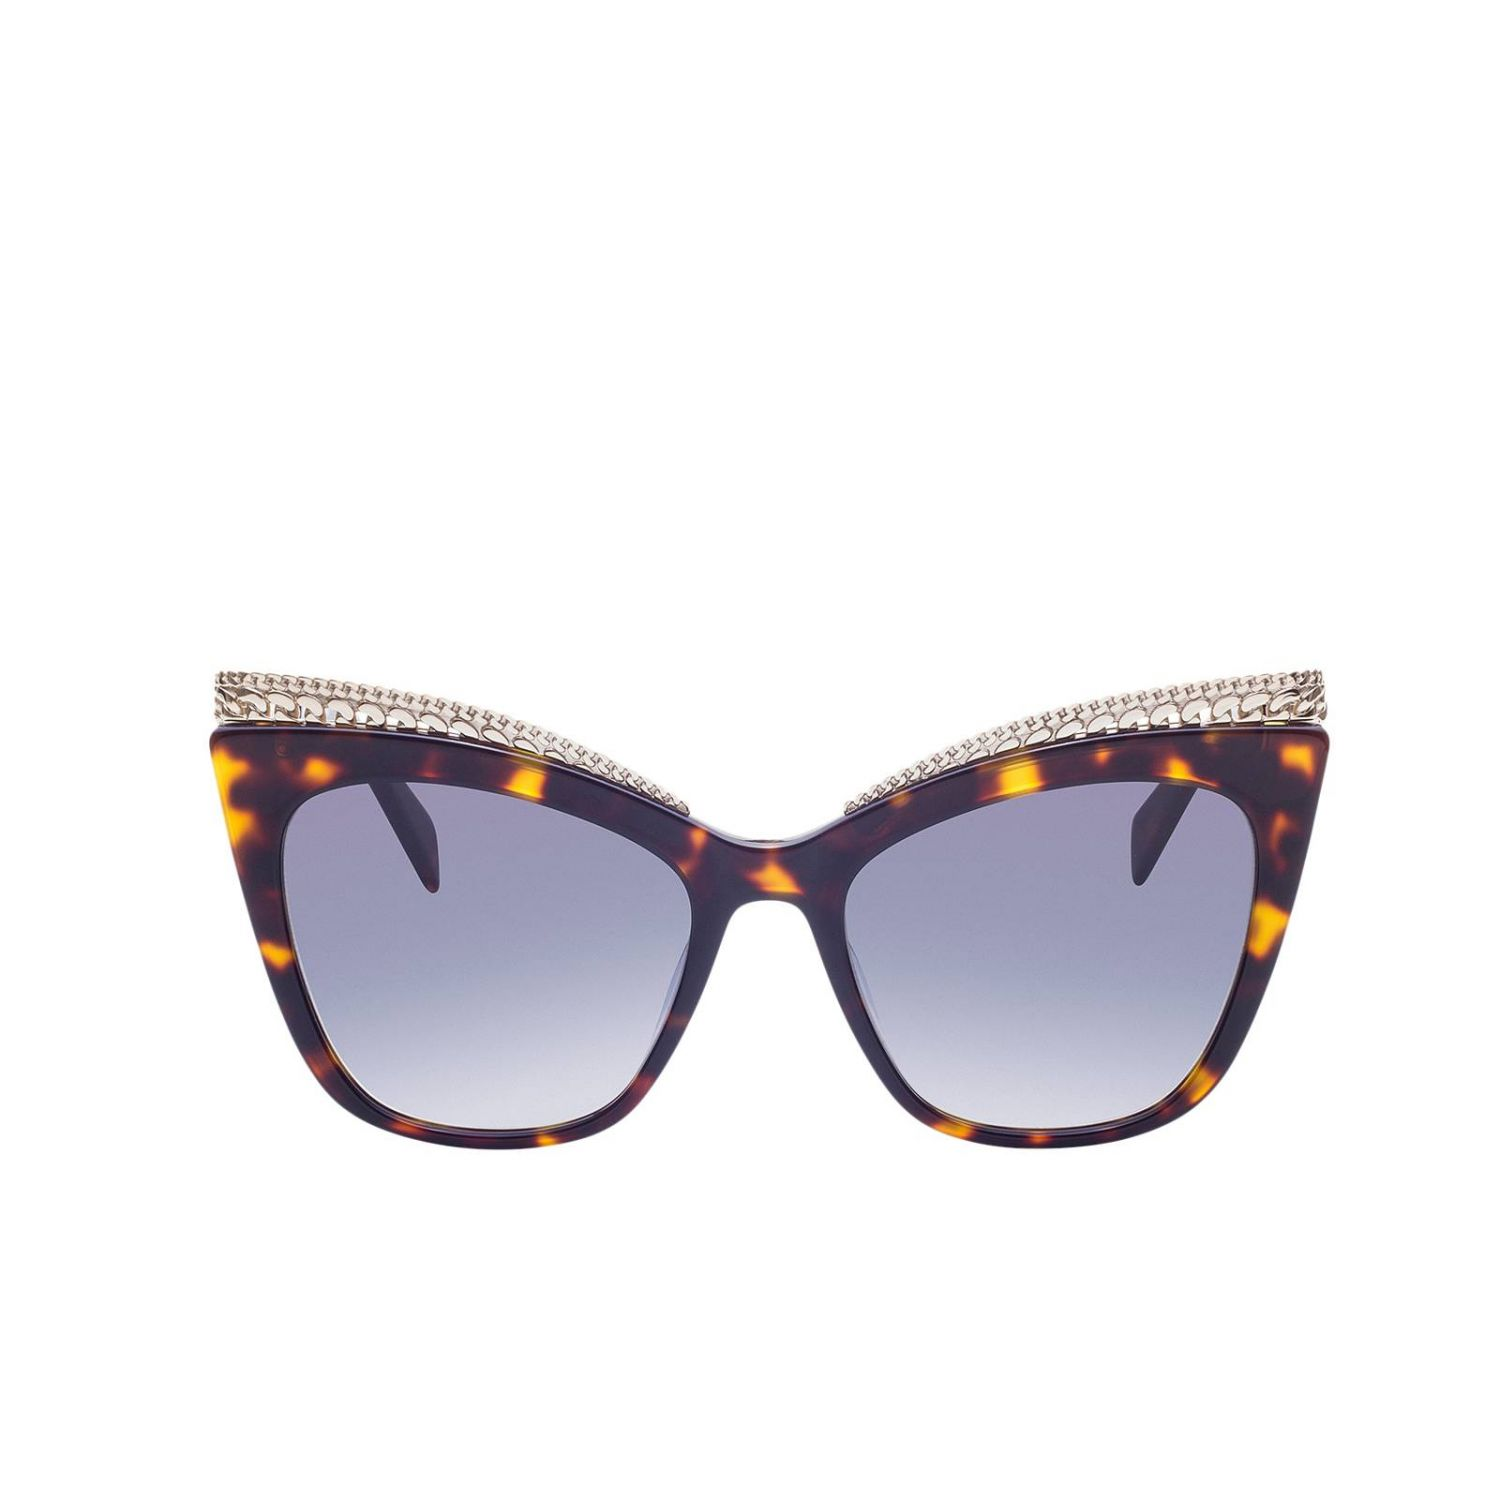 Sunglasses women Moschino brown 2